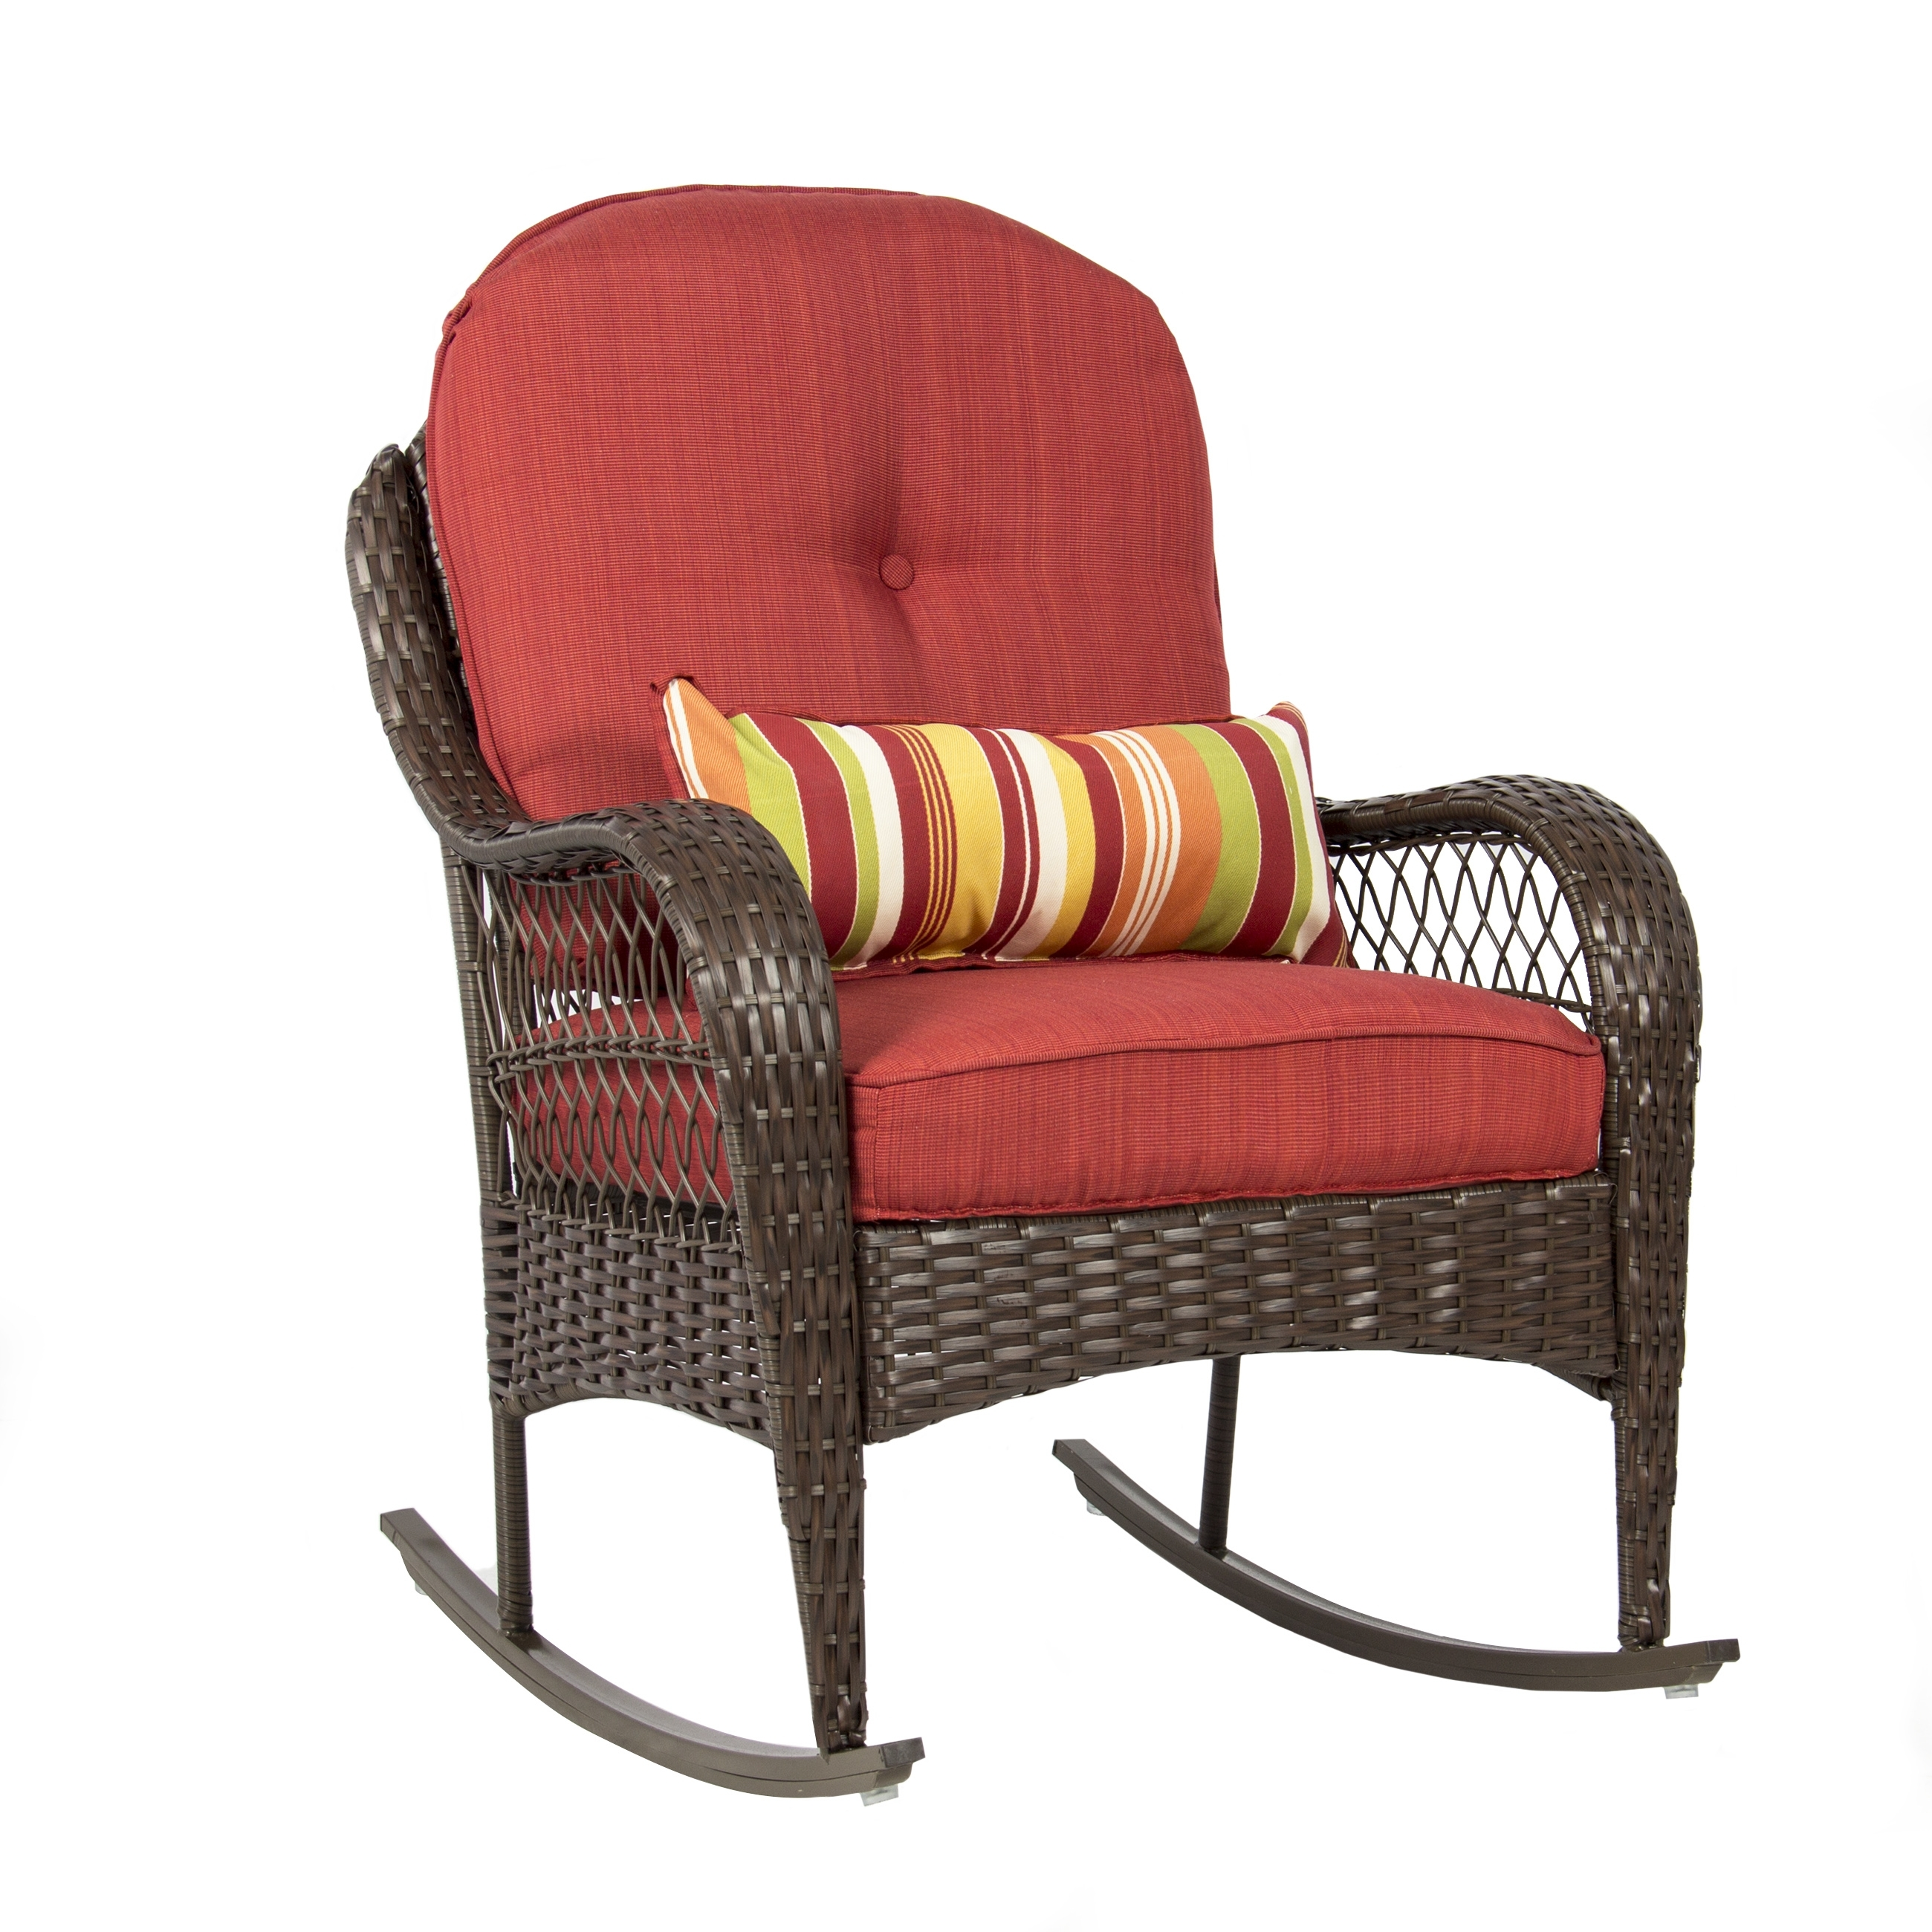 Bestchoiceproducts: Best Choice Products Wicker Rocking Chair Patio Inside Padded Patio Rocking Chairs (#5 of 15)